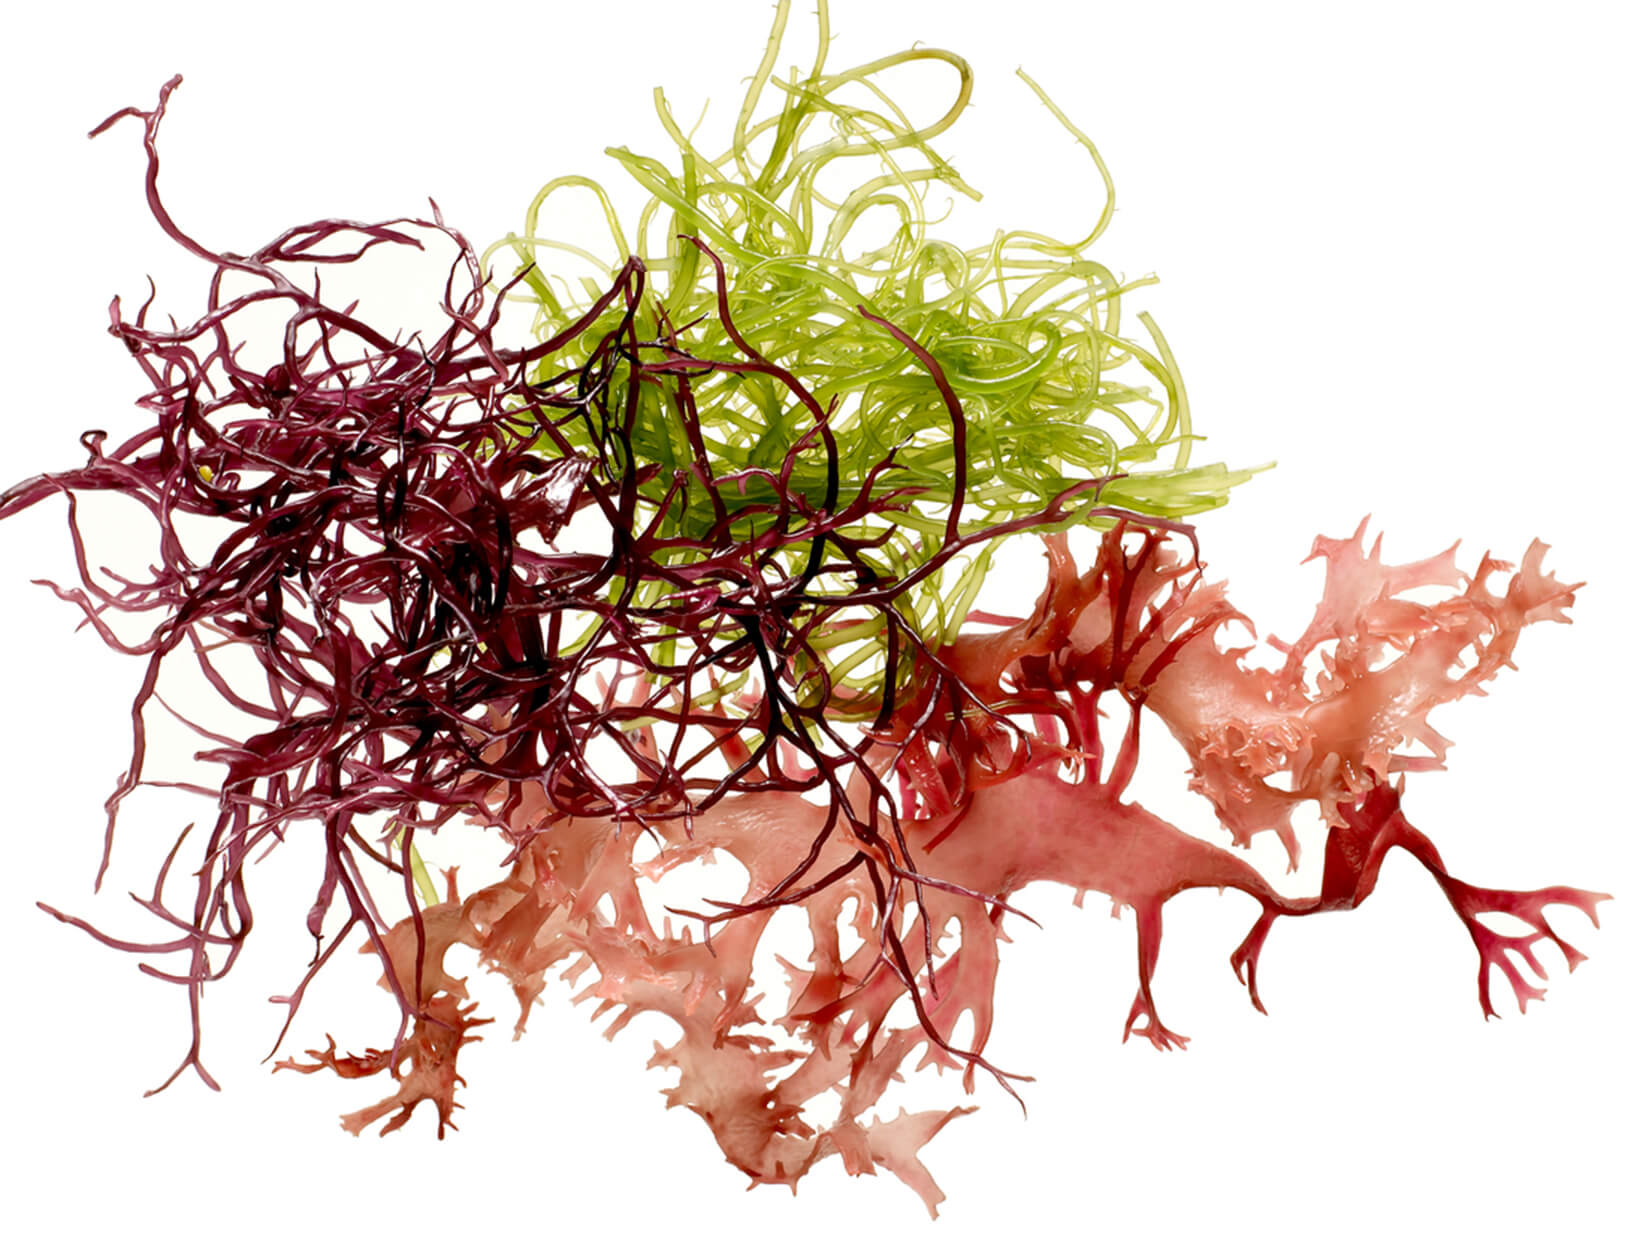 Godfrey's Guide: The Secret Glamour of Seaweed